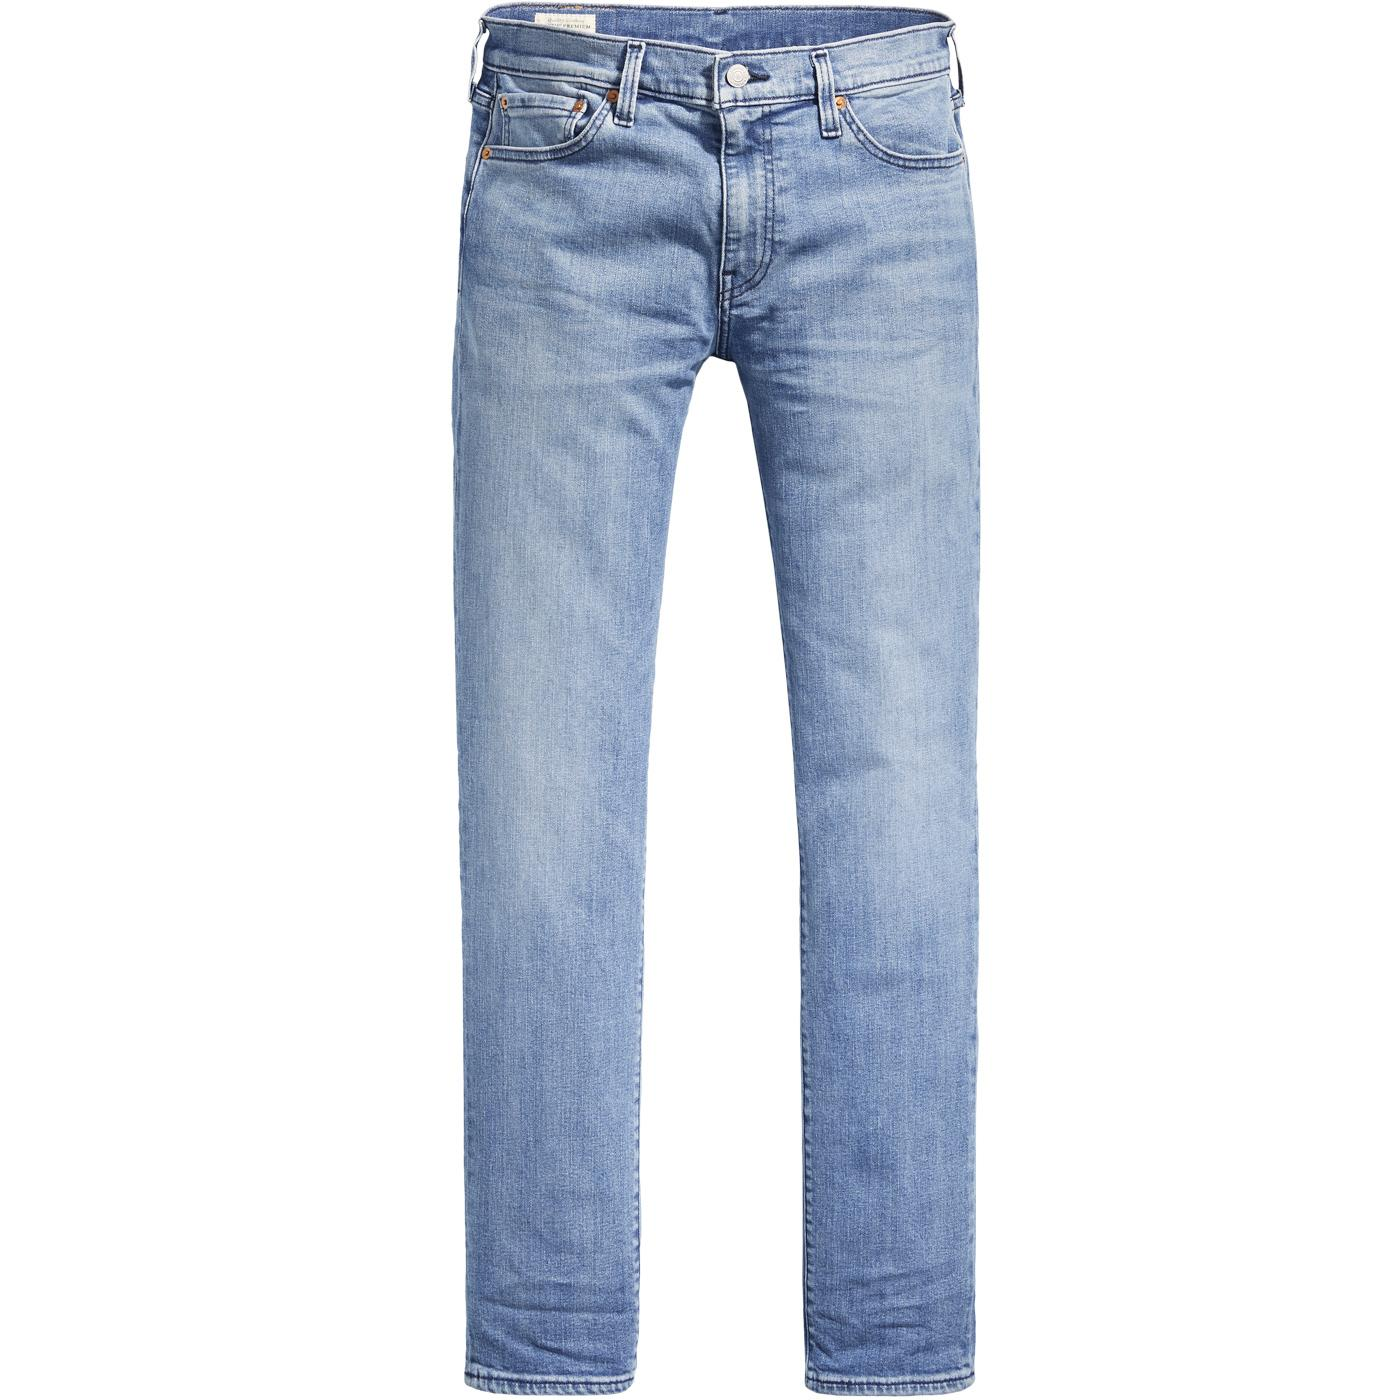 LEVI'S 511 Flex Men's Slim Jeans (East Lake Adv)